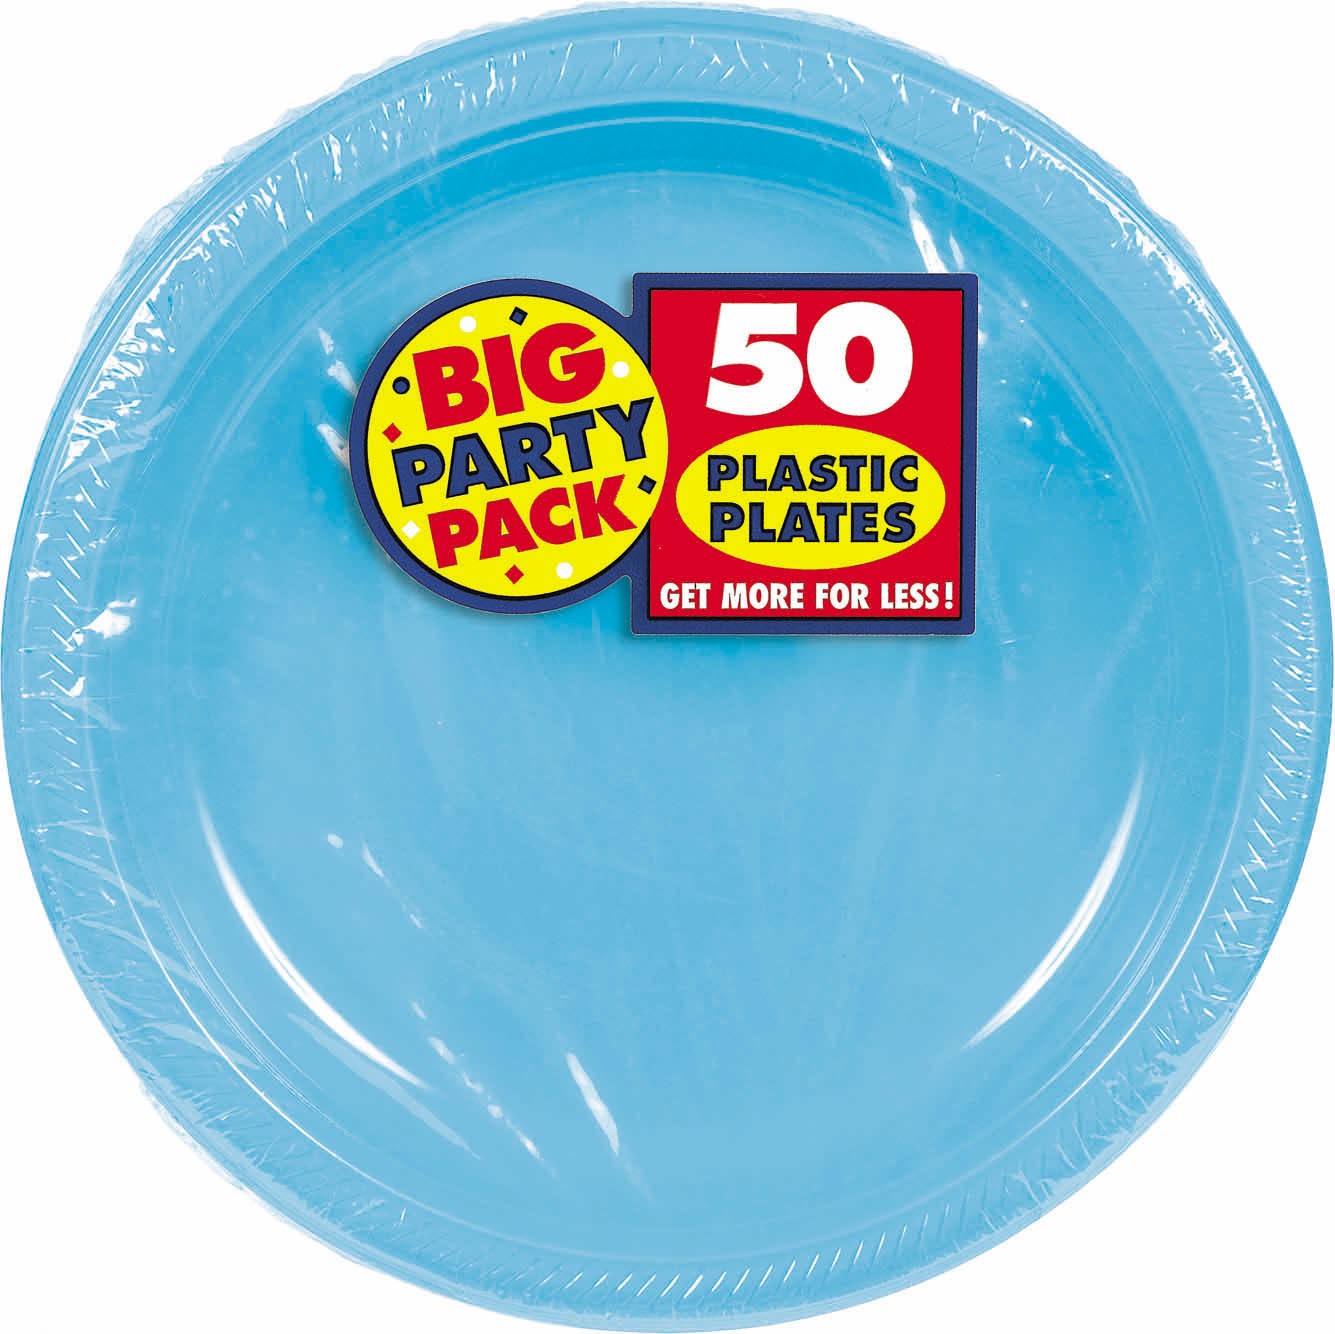 Big Party Pack 10 1/4 inch Plastic Plates- Caribbean